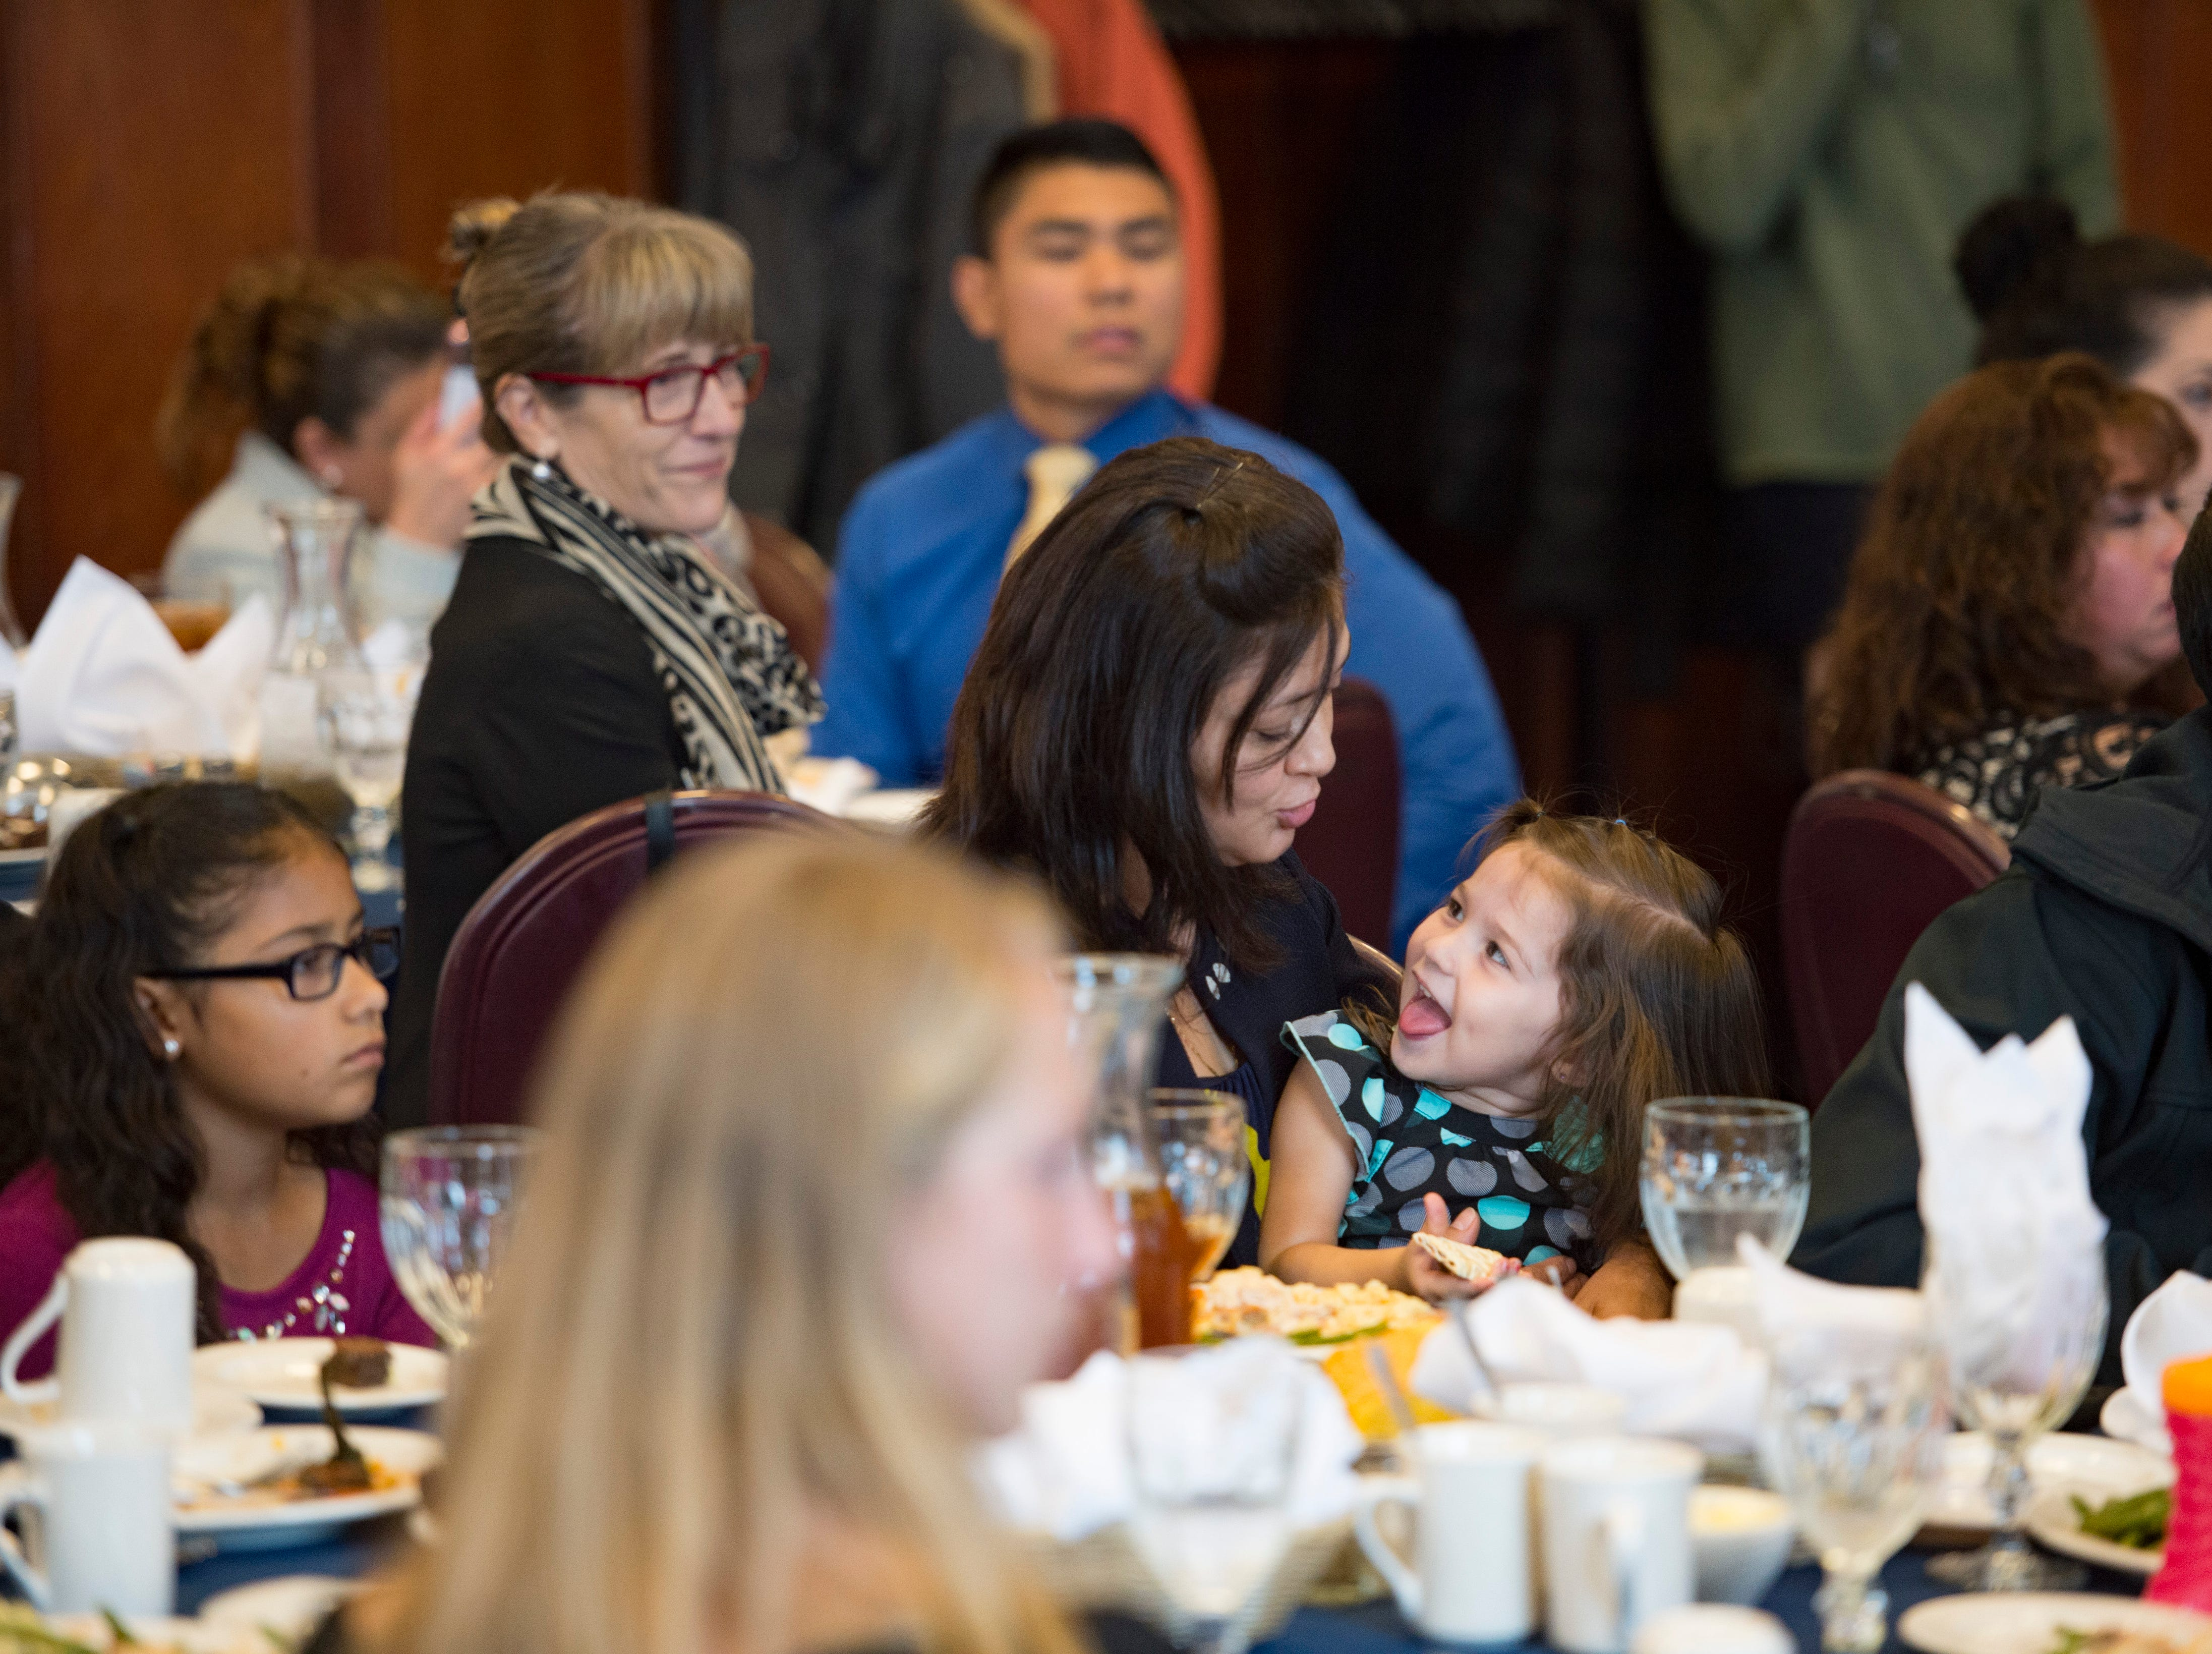 Friends, family and partners support students during the Coloradoan's First Class banquet at the University of Northern Colorado in Greeley on Saturday, October 6, 2018. First Class is a program that supports first-generation students in Northern Colorado. The program is now in its third year and is a partnership between The Coloradoan and Aims Community College, Fort Collins Lions Club, Front Range Community College, Colorado State University, Canvas Credit Union (formerly Public Service Credit Union) and University of Northern Colorado.